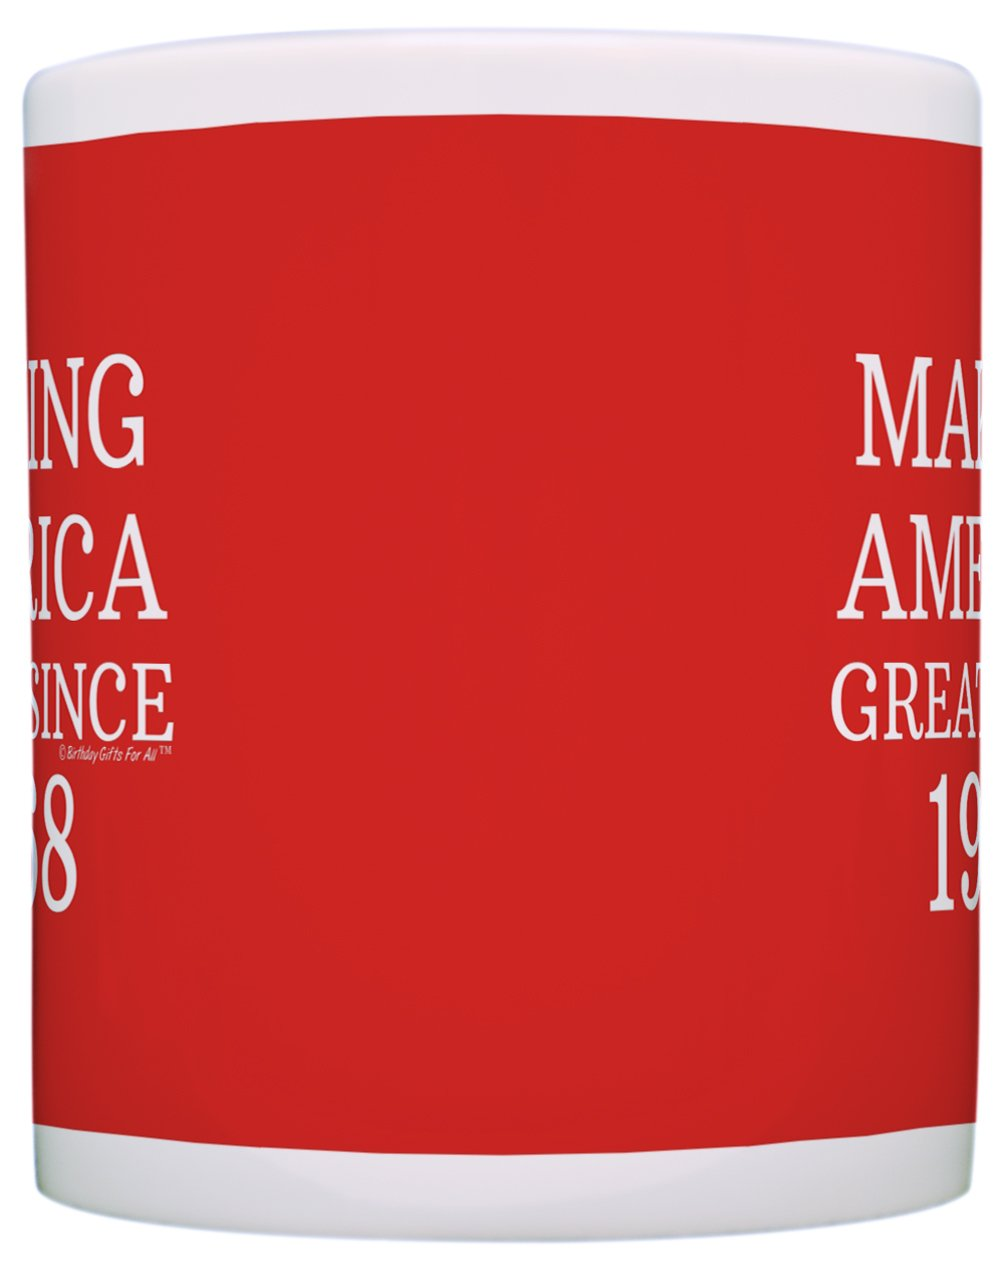 50th Birthday Gifts For All Making America Great Since 1968 Republican Mug Republican Gifts Coffee Mug Tea Cup Red by ThisWear (Image #3)